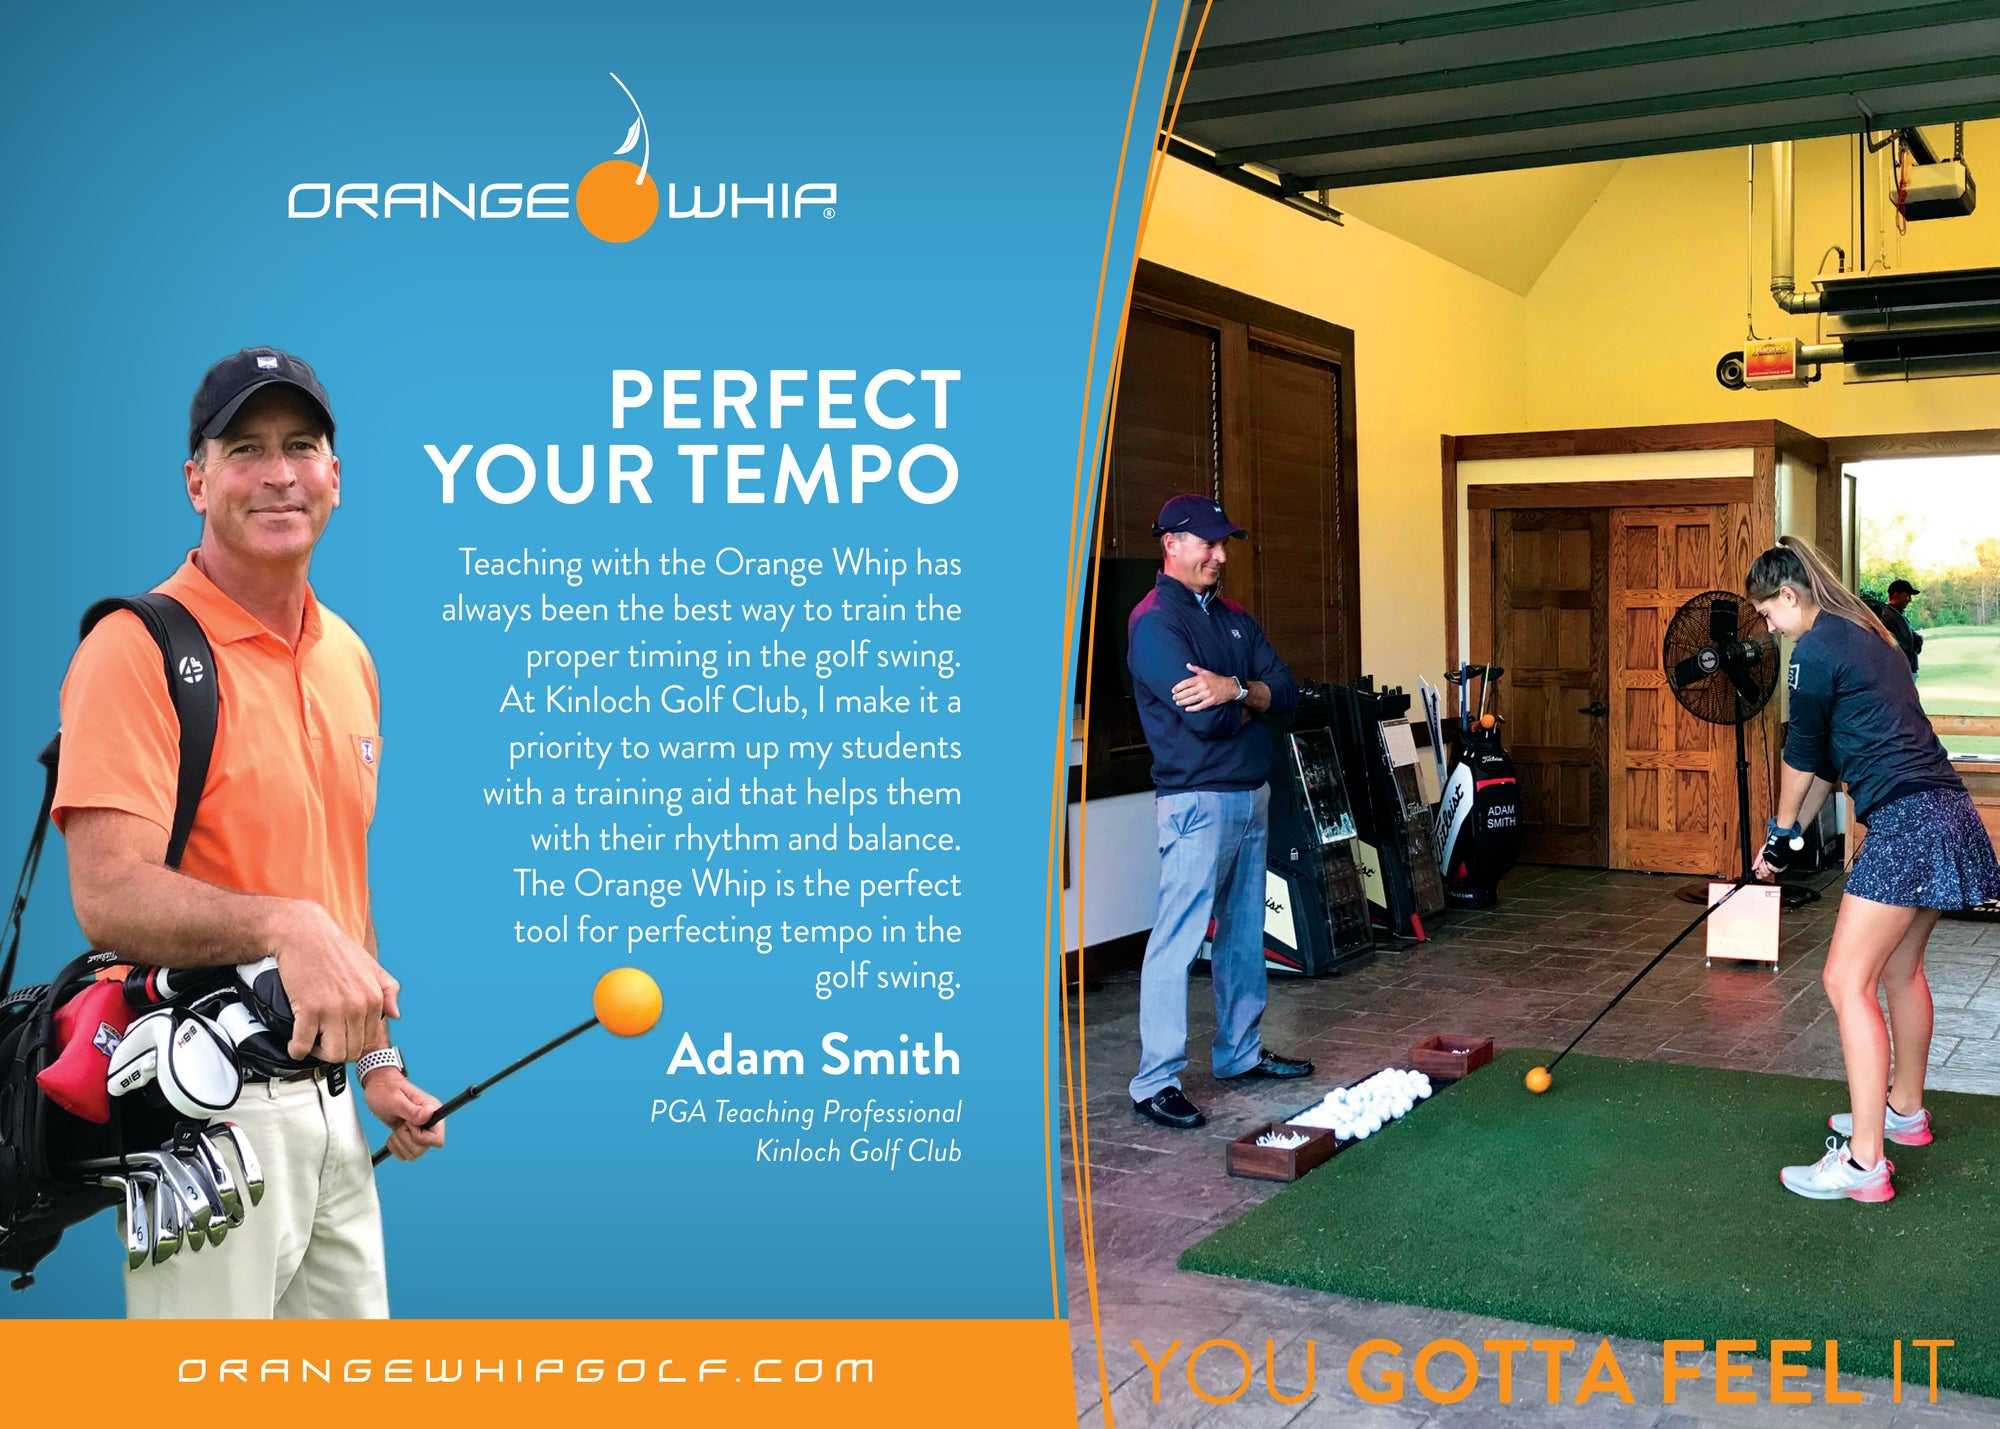 Timing is Everything - Adam Smith, PGA